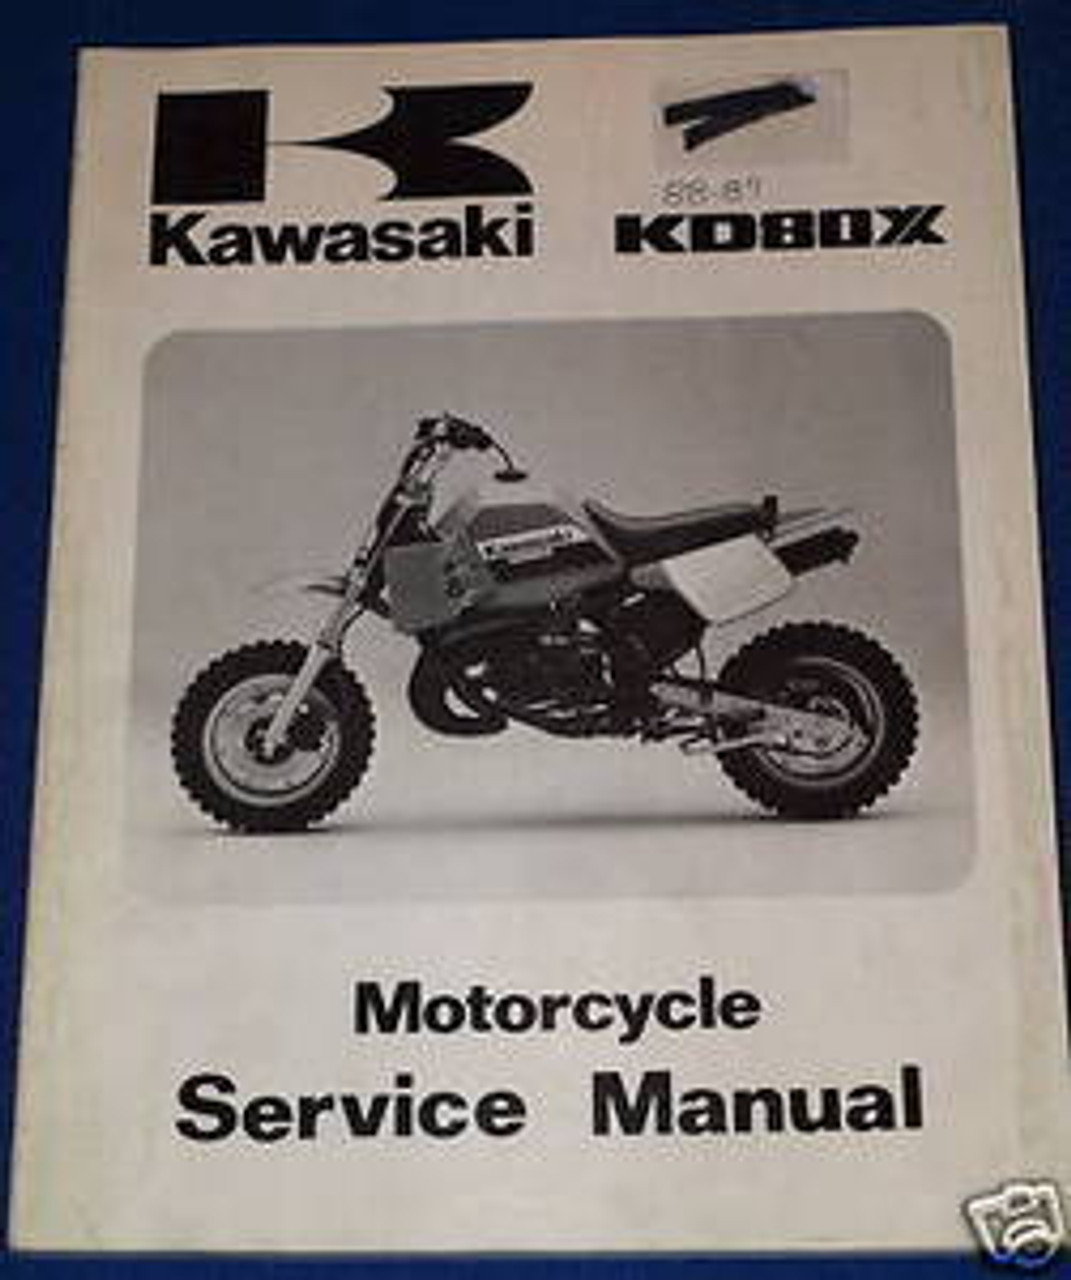 1988 KAWASAKI KD80X Service Manual KD80-N1 Motorcycle Factory Dealer on battery diagrams, transformer diagrams, switch diagrams, motor diagrams, series and parallel circuits diagrams, honda motorcycle repair diagrams, led circuit diagrams, internet of things diagrams, electrical diagrams, electronic circuit diagrams, pinout diagrams, friendship bracelet diagrams, troubleshooting diagrams, hvac diagrams, engine diagrams, smart car diagrams, sincgars radio configurations diagrams, lighting diagrams, gmc fuse box diagrams,